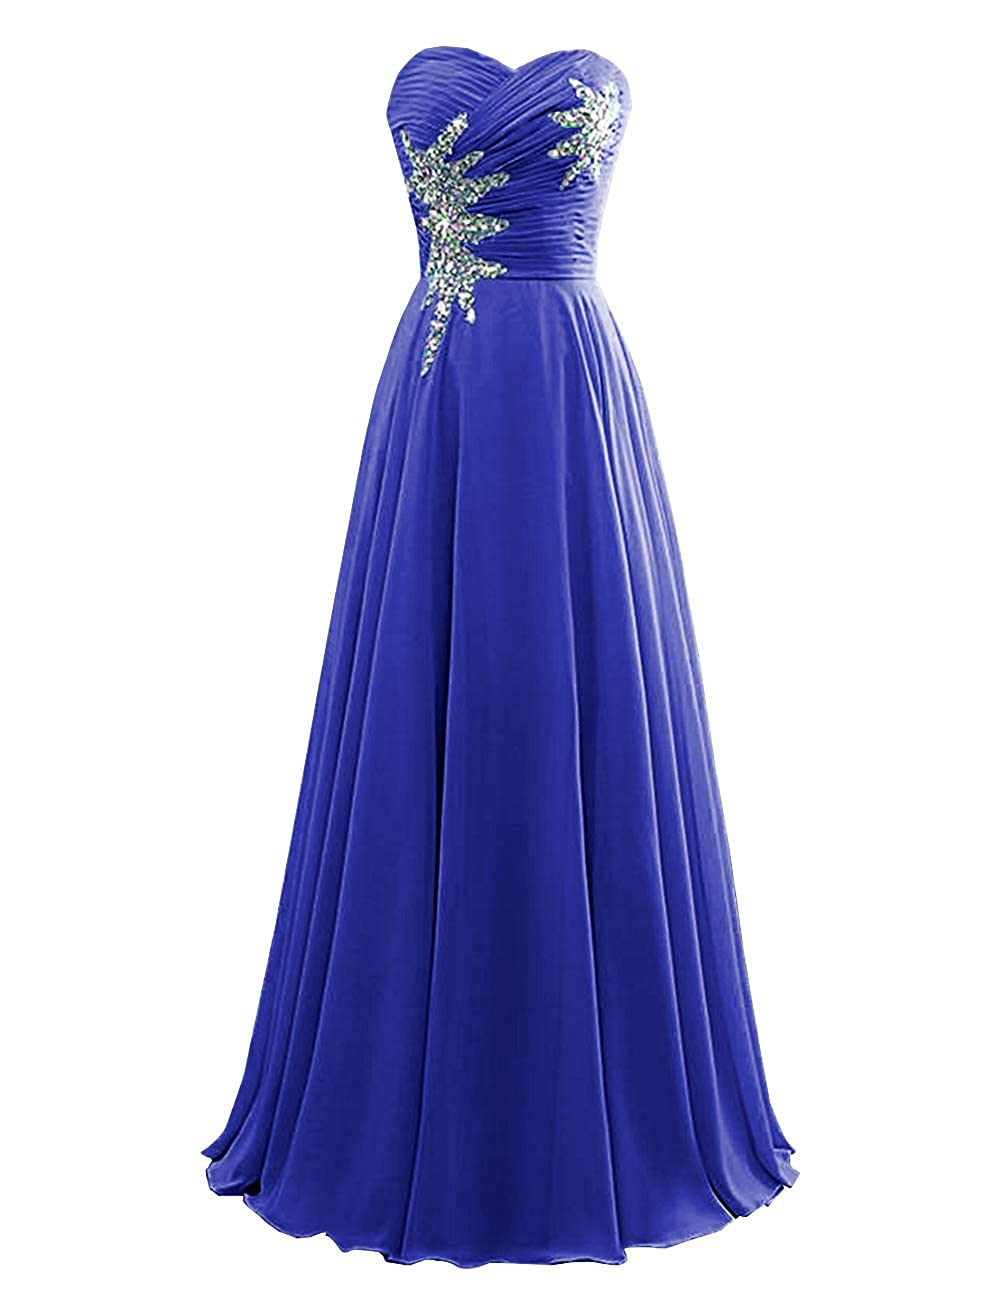 Reoyal bluee Women's Strapless Bridesmaid Dresses Beaded Prom Wedding Party Gowns